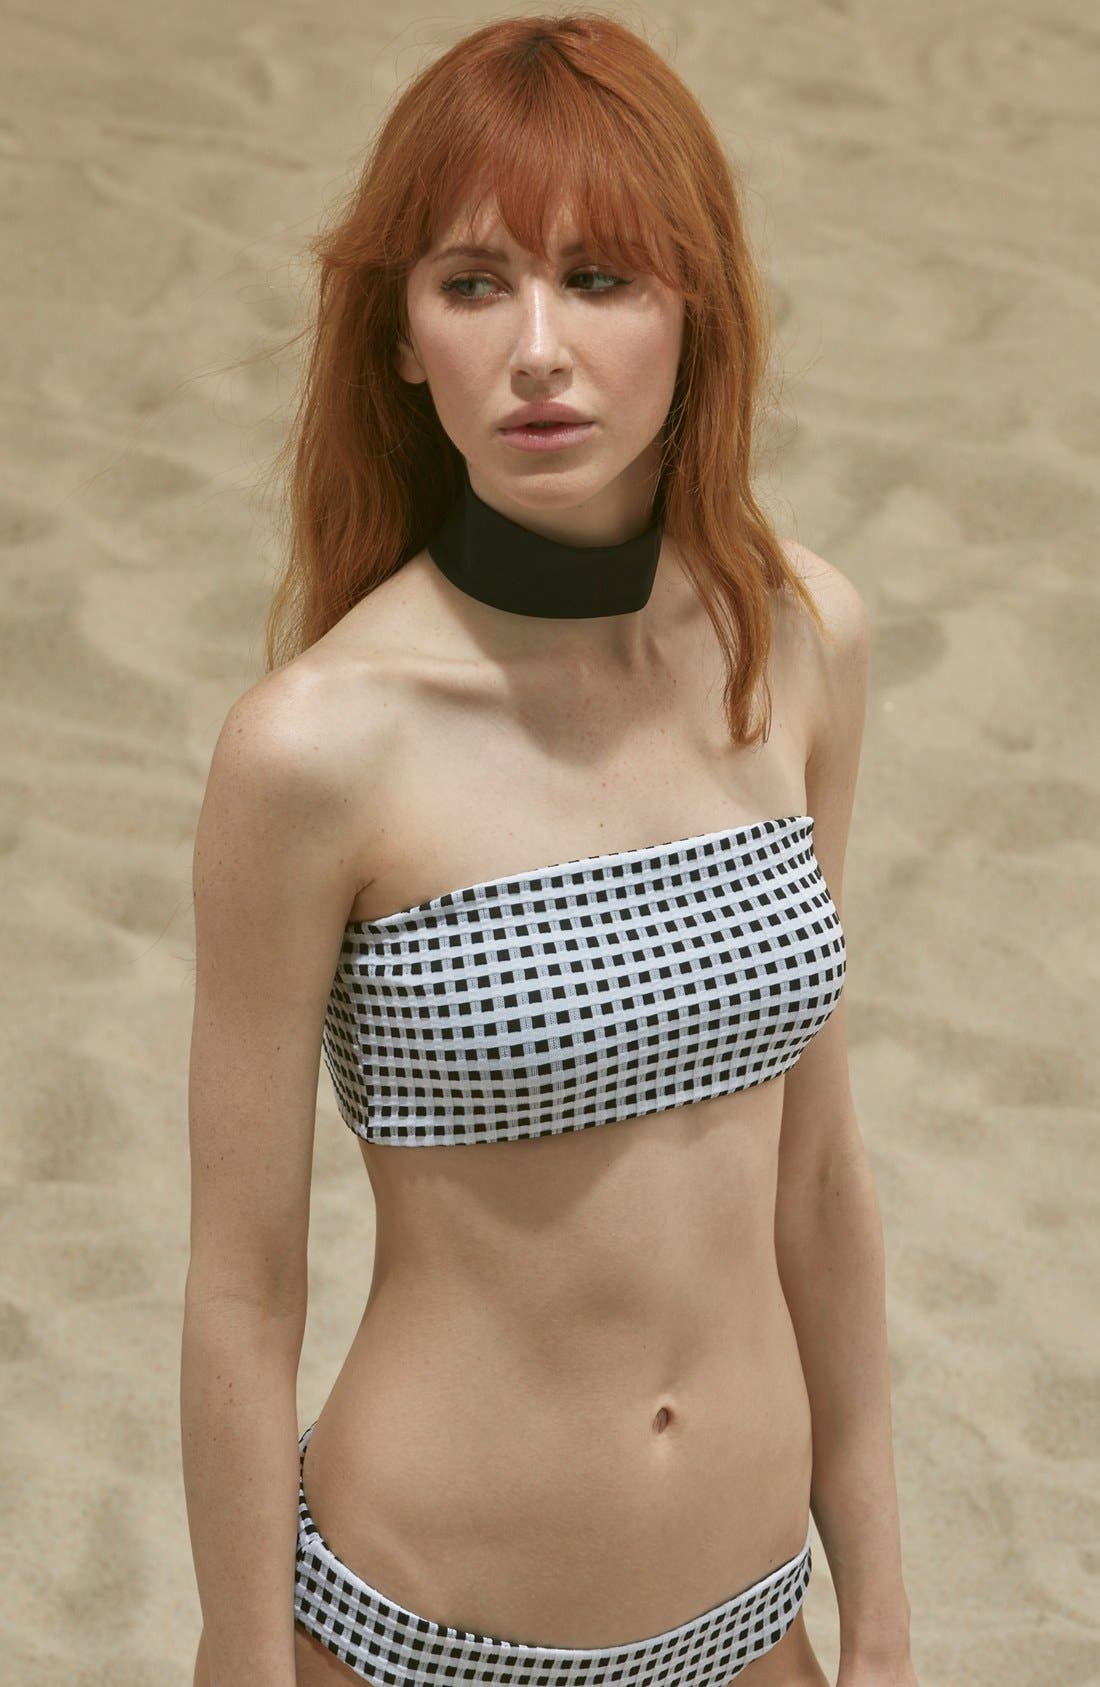 Alternate Image 1 Selected - ONIA 'Laura' Choker Bandeau Bikini Top